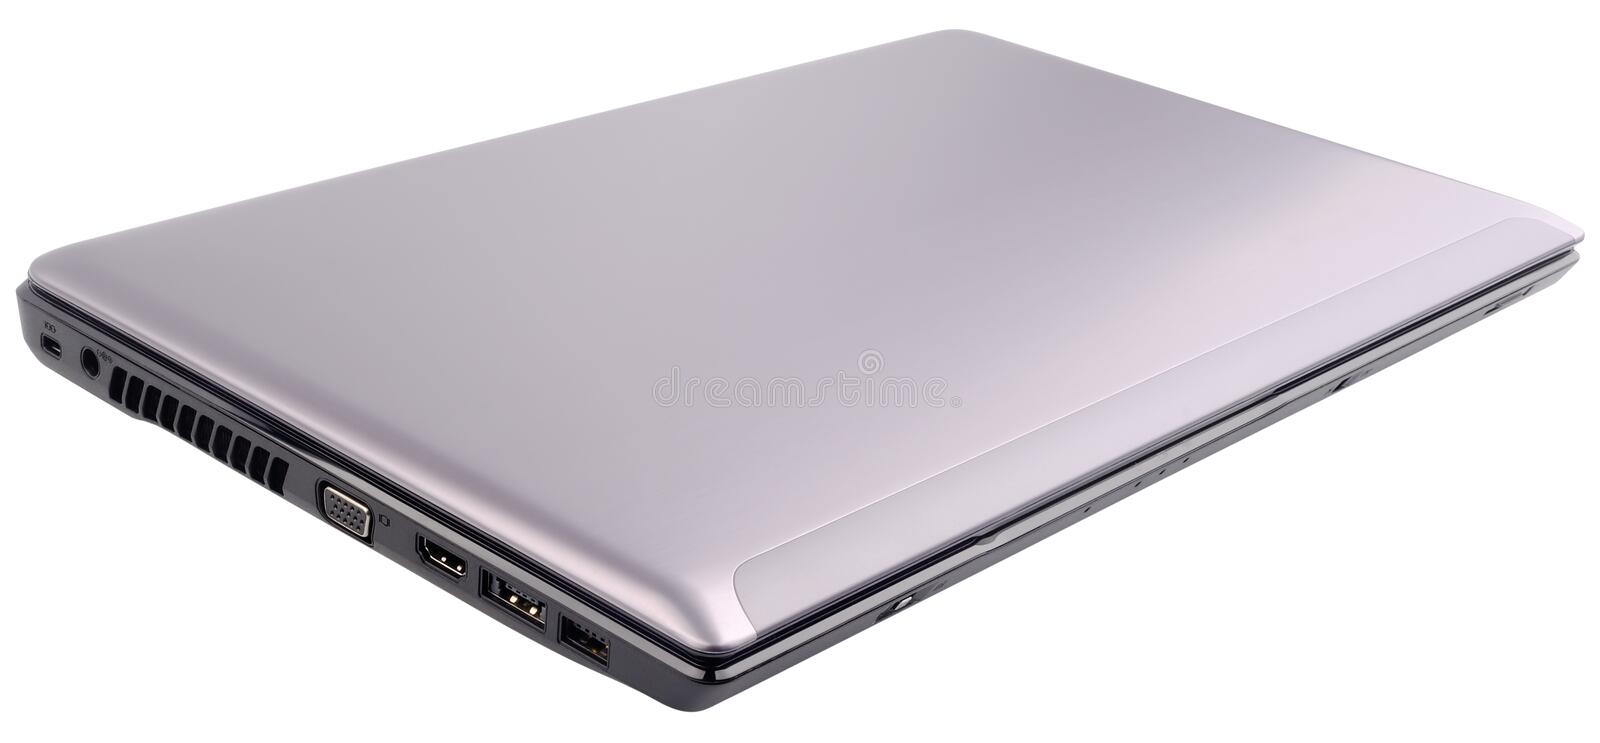 Closed laptop isolated royalty free stock image